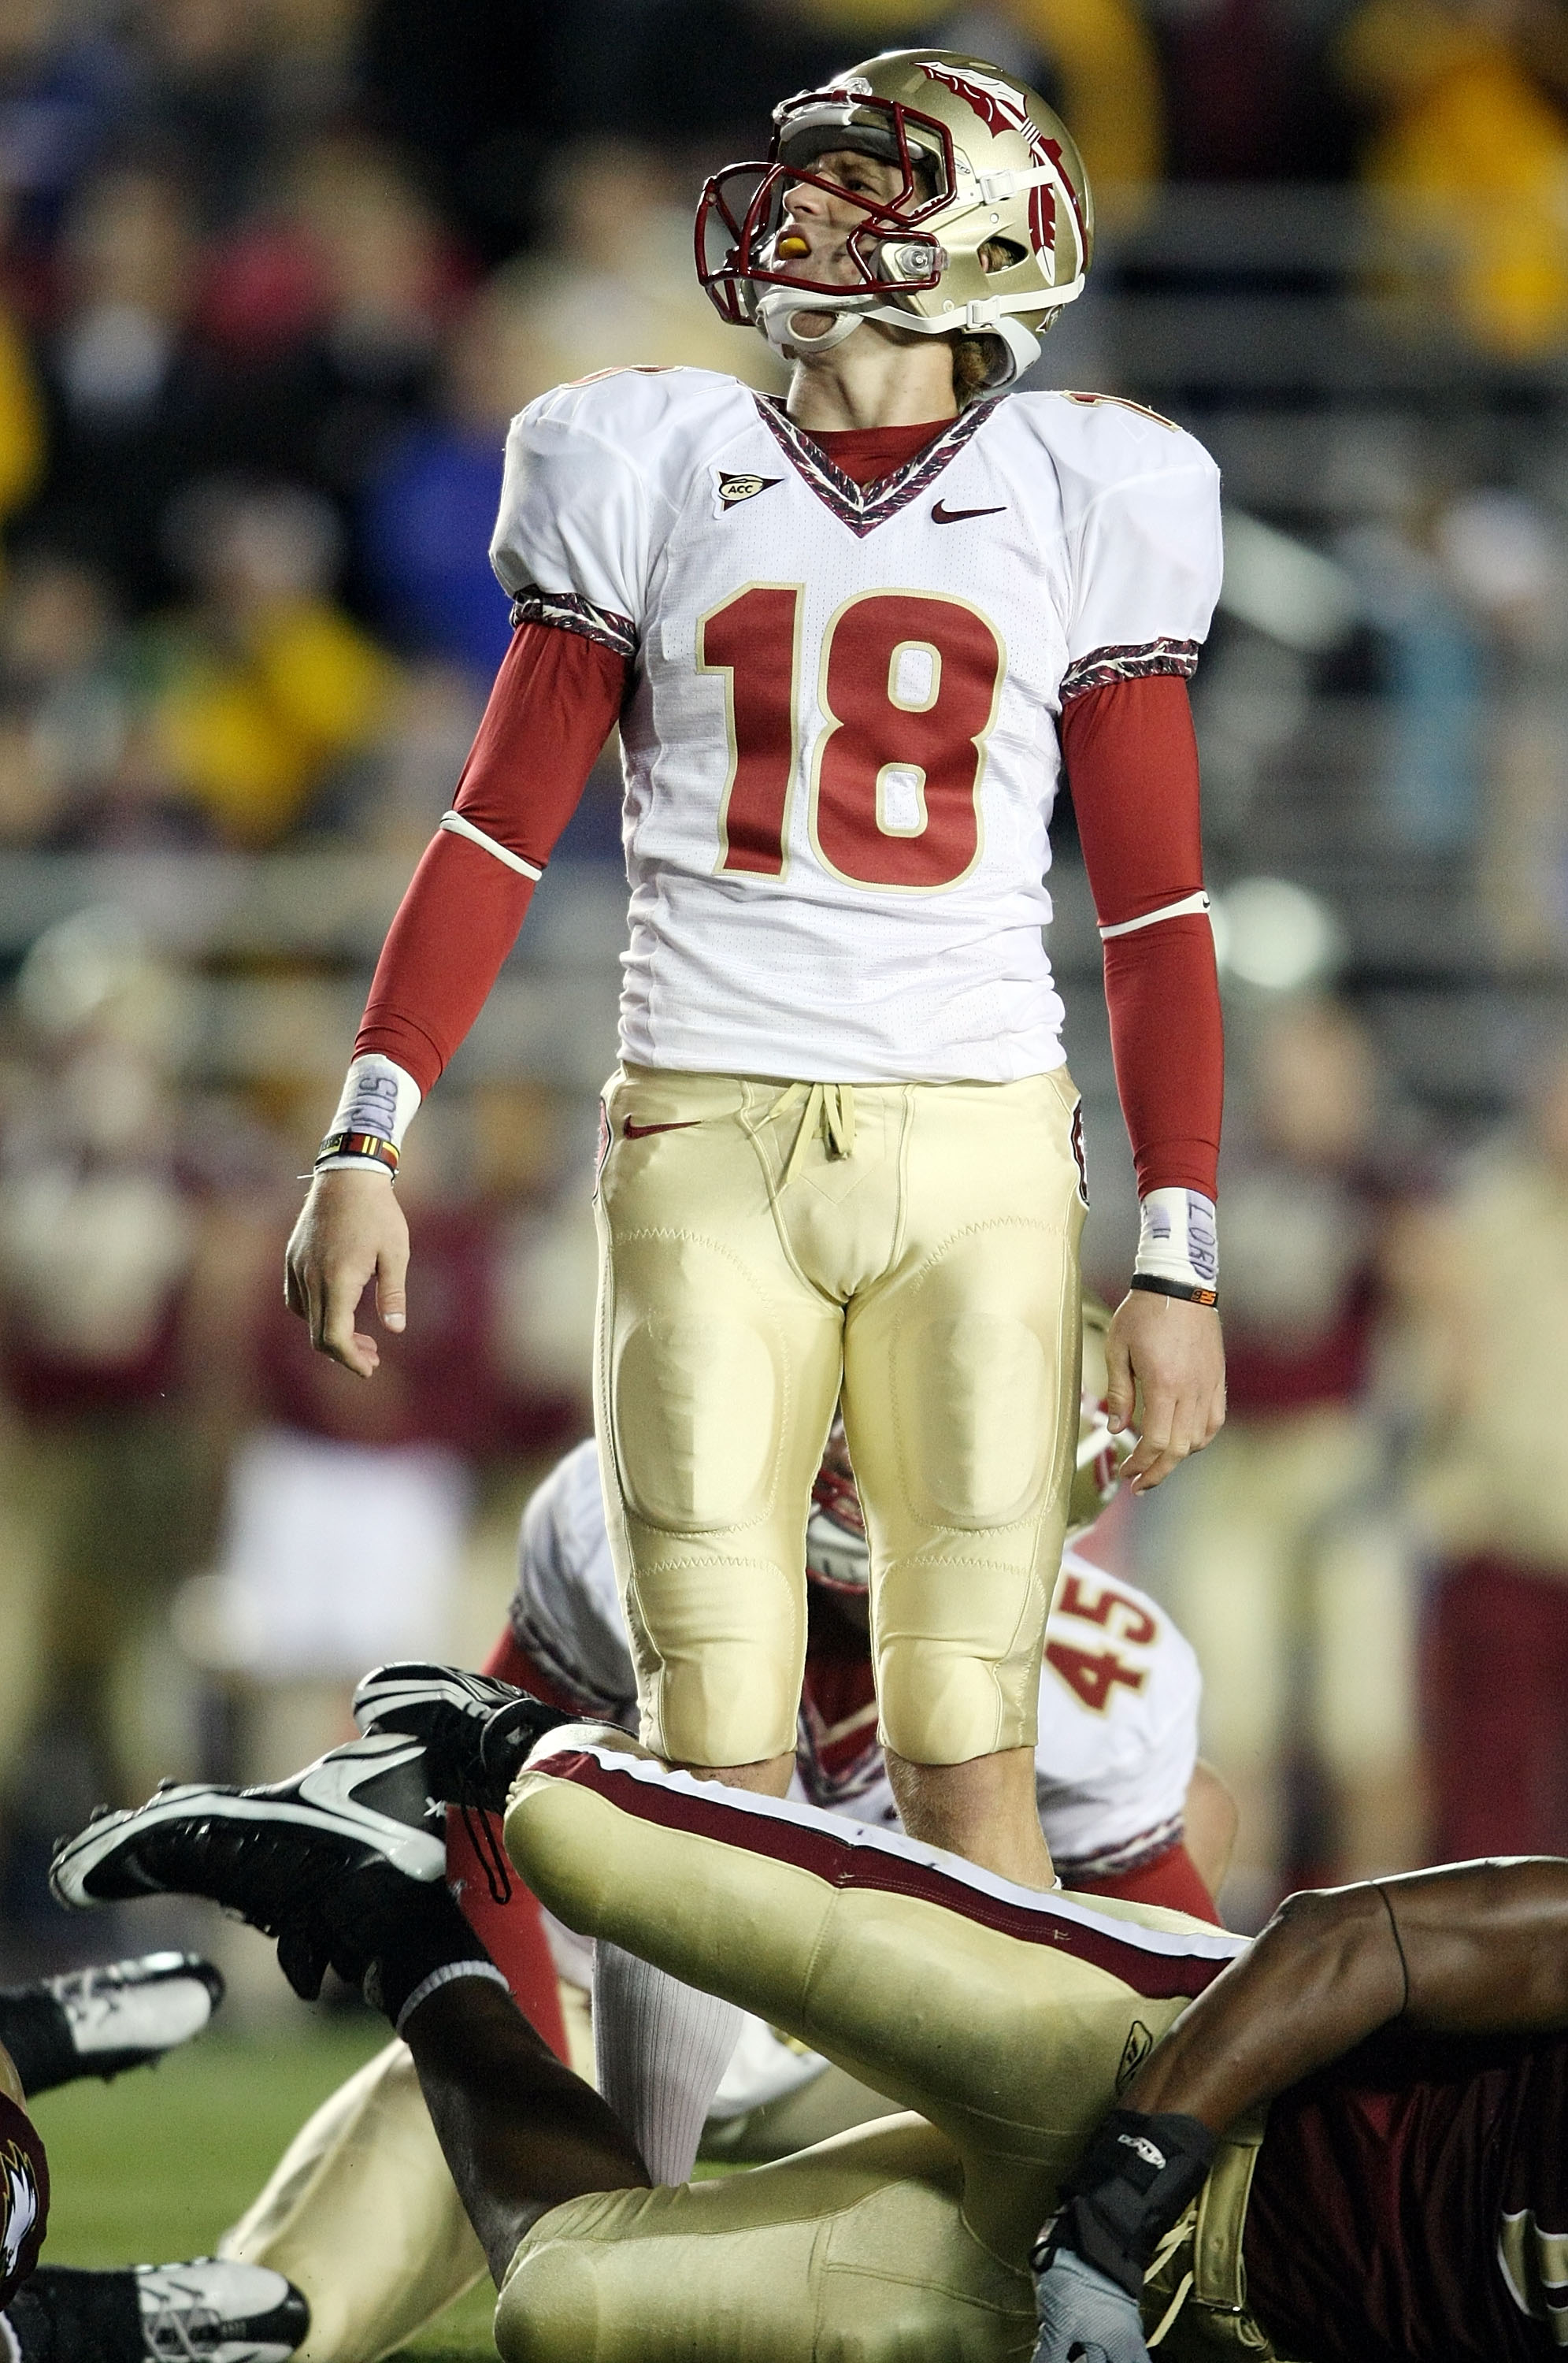 Florida State has the more dominant special teams with Dustin Hopkins and Greg Reid